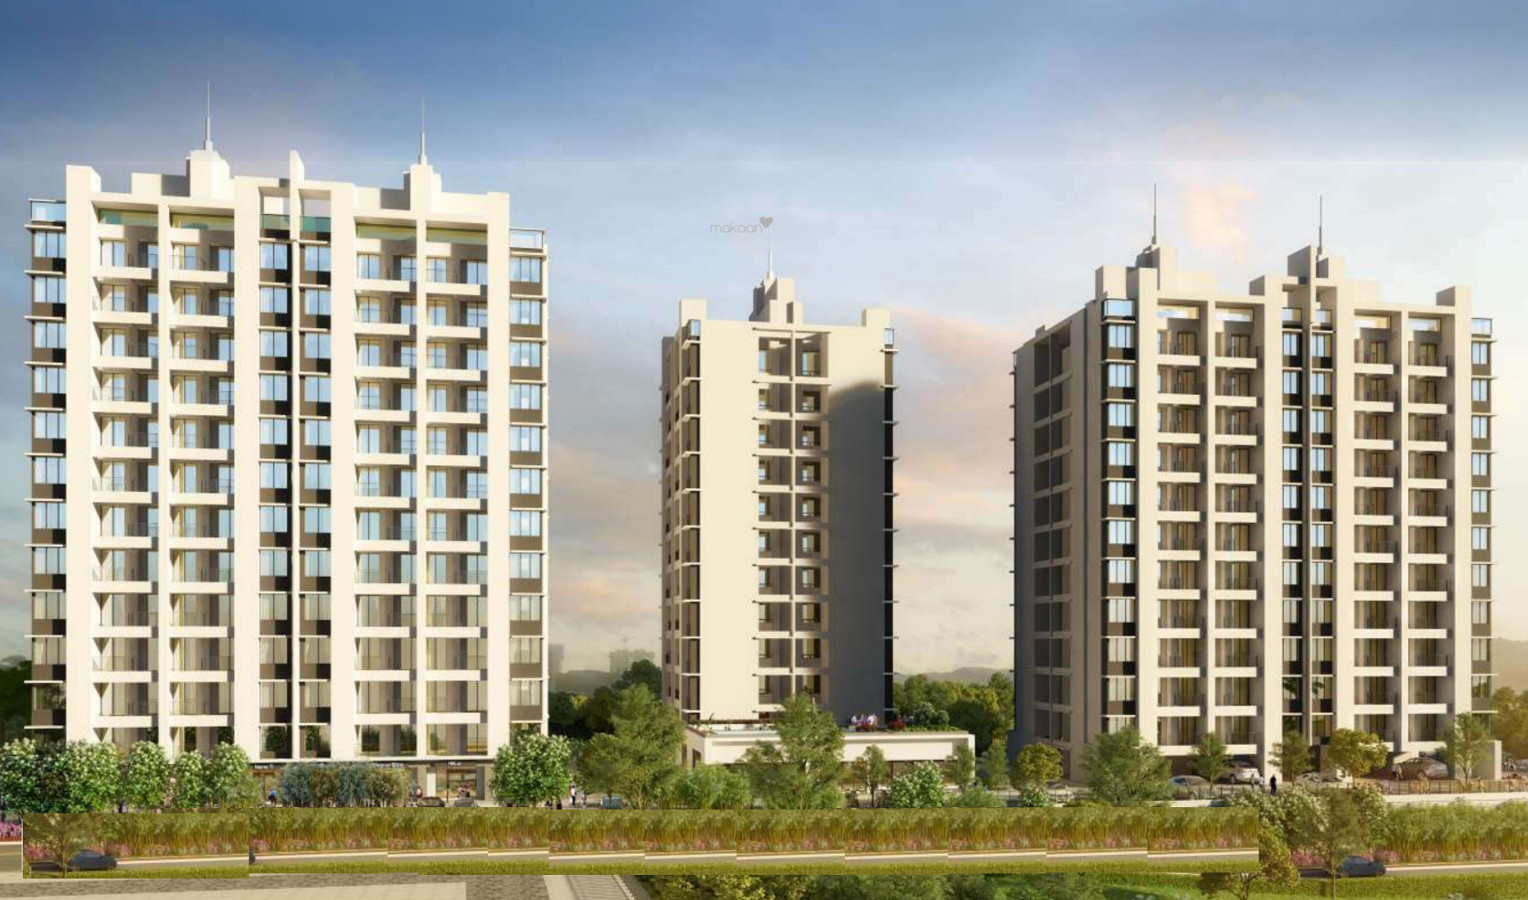 Projects in Bavdhan - All Residential Projects for sale in Bavdhan, Pune